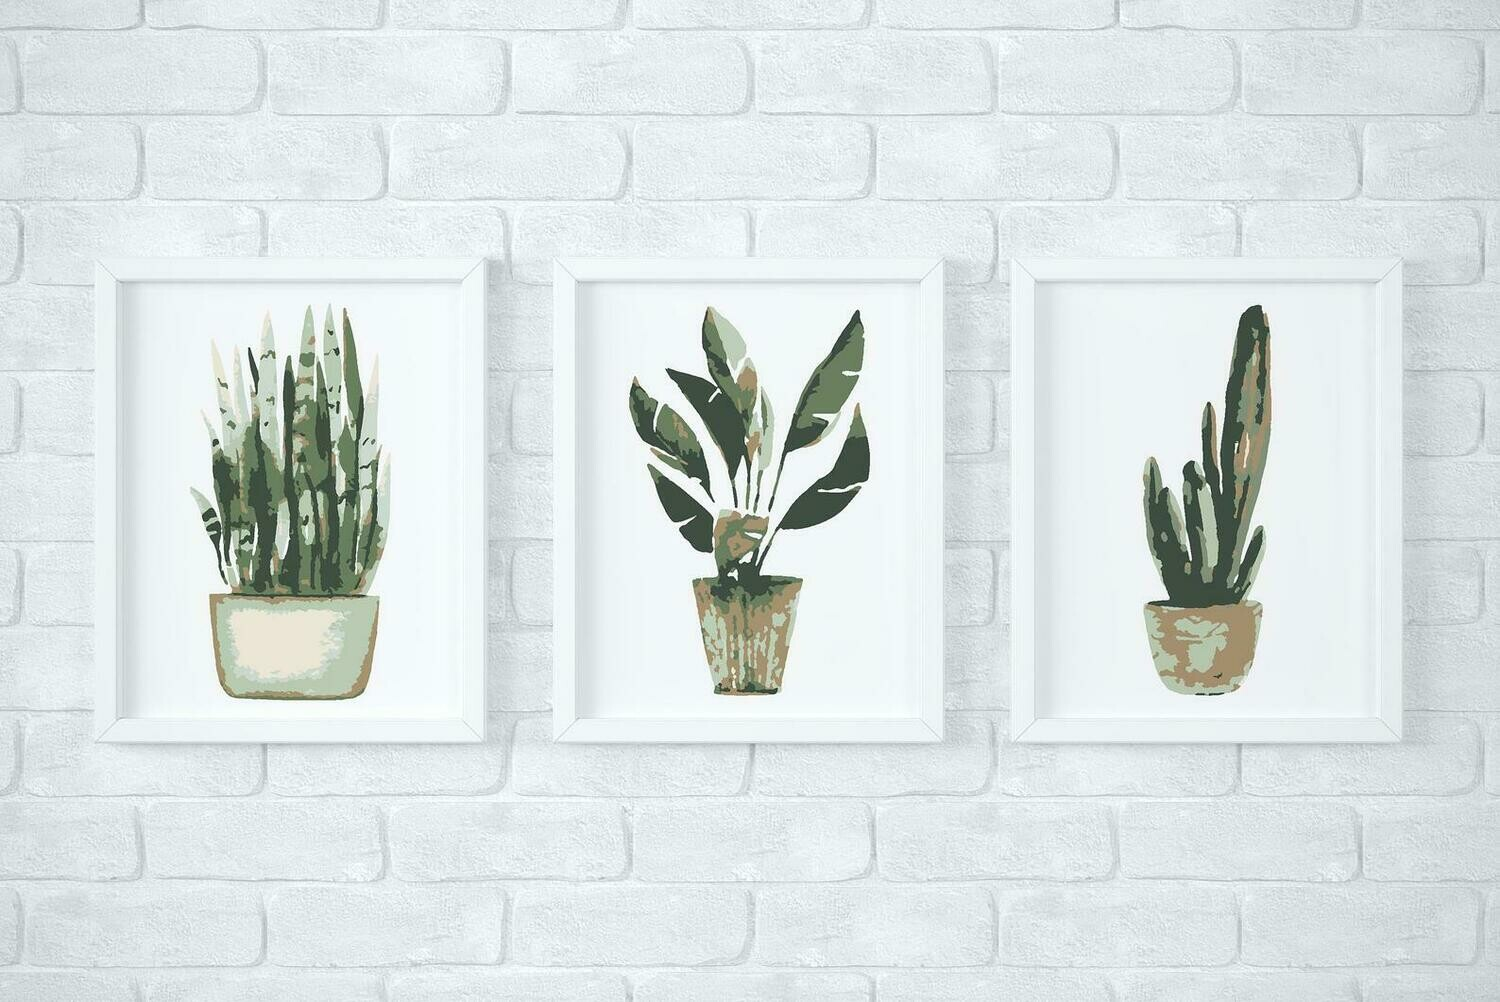 Potted Plants Paint by Number kit